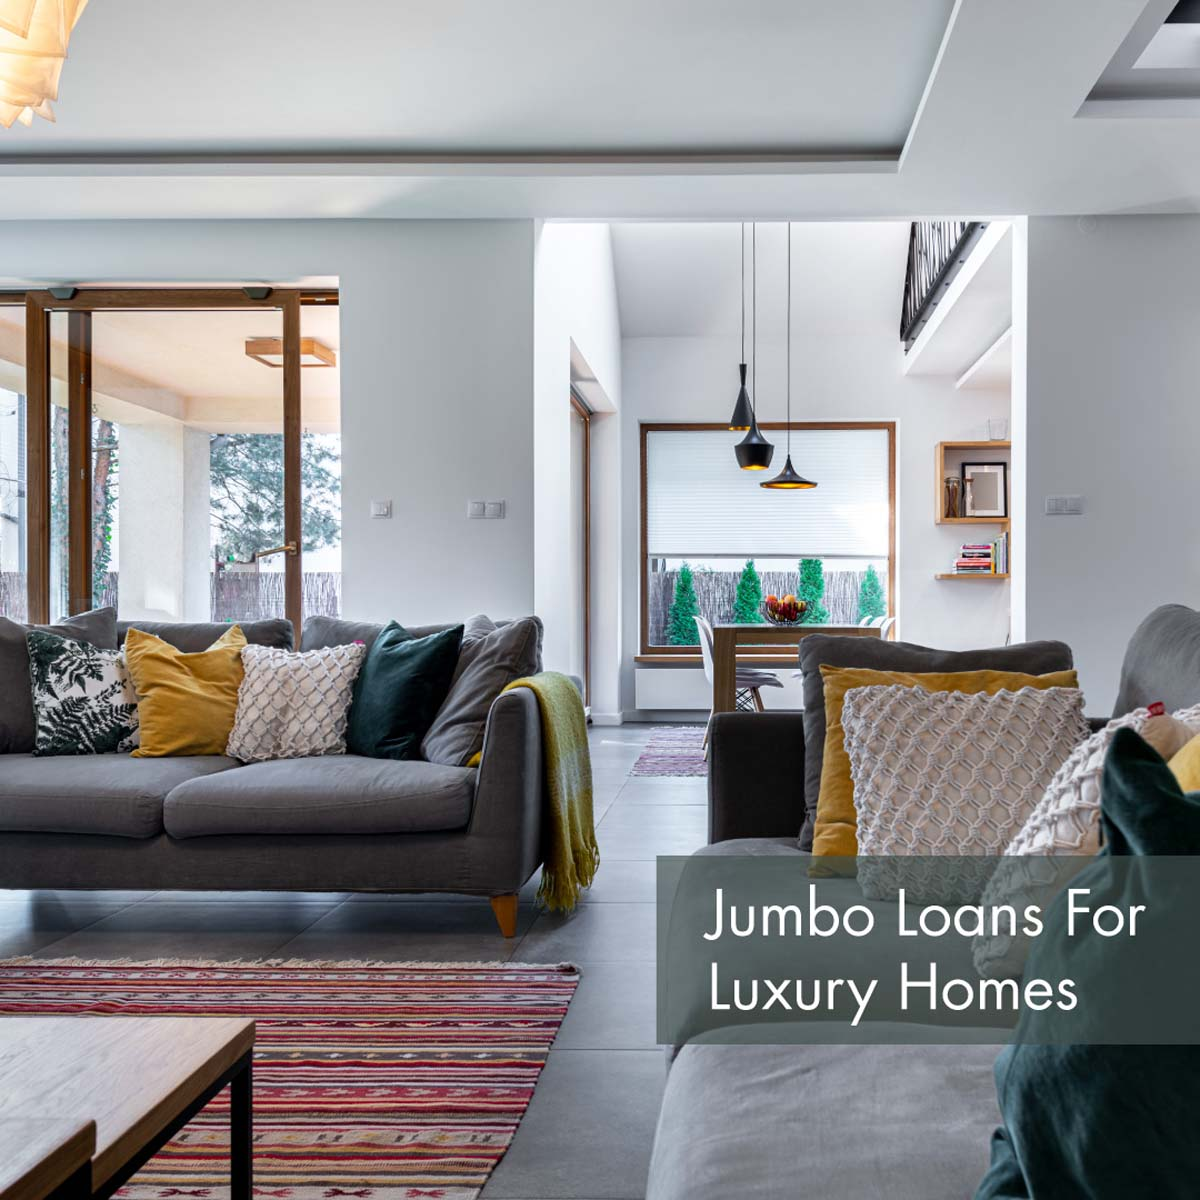 Loans above the conforming loan limit are known as Jumbo loans. If you have a high credit score and the income to match, a jumbo loan can help you live large. Jumbo loan limits can vary, but I'll help you find out exactly how much you can spend. Call today! https://t.co/azIRotMn2Q